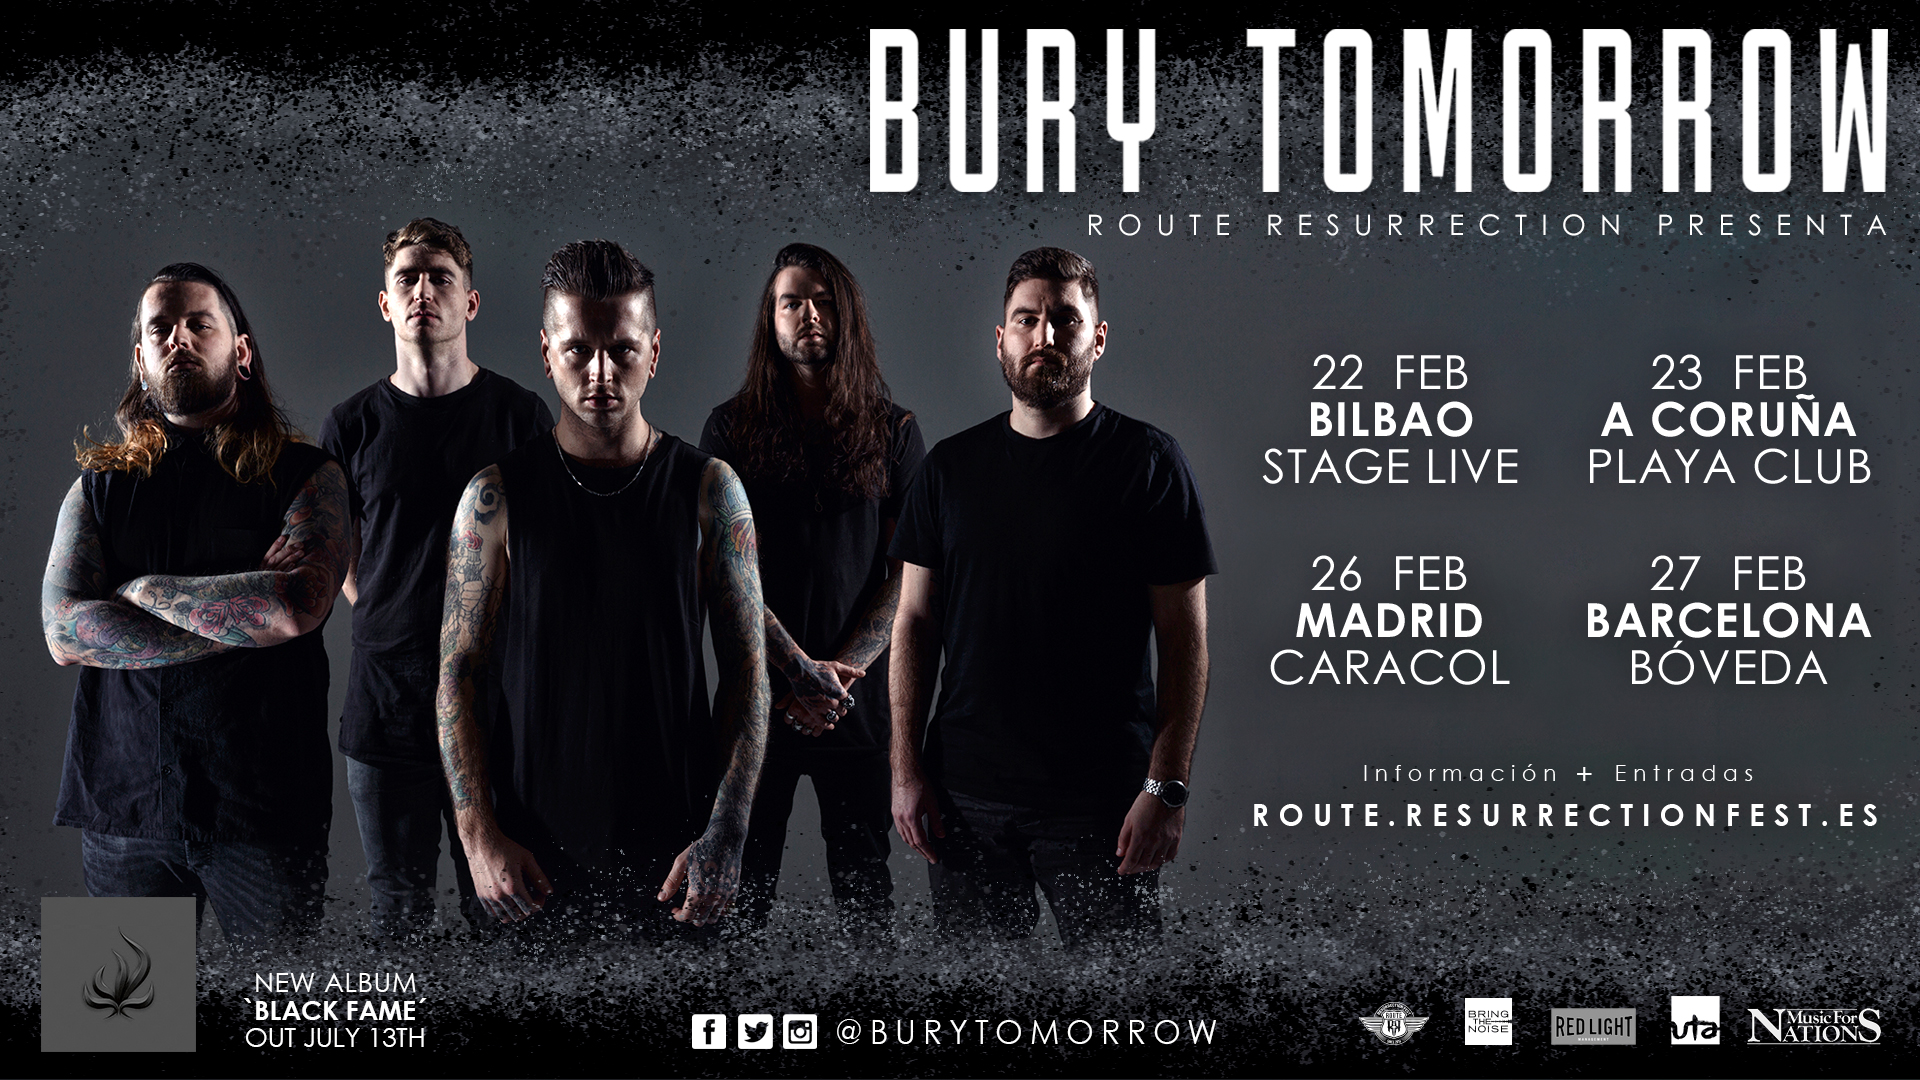 Route Resurrection Fest 2019 - Bury Tomorrow - Event